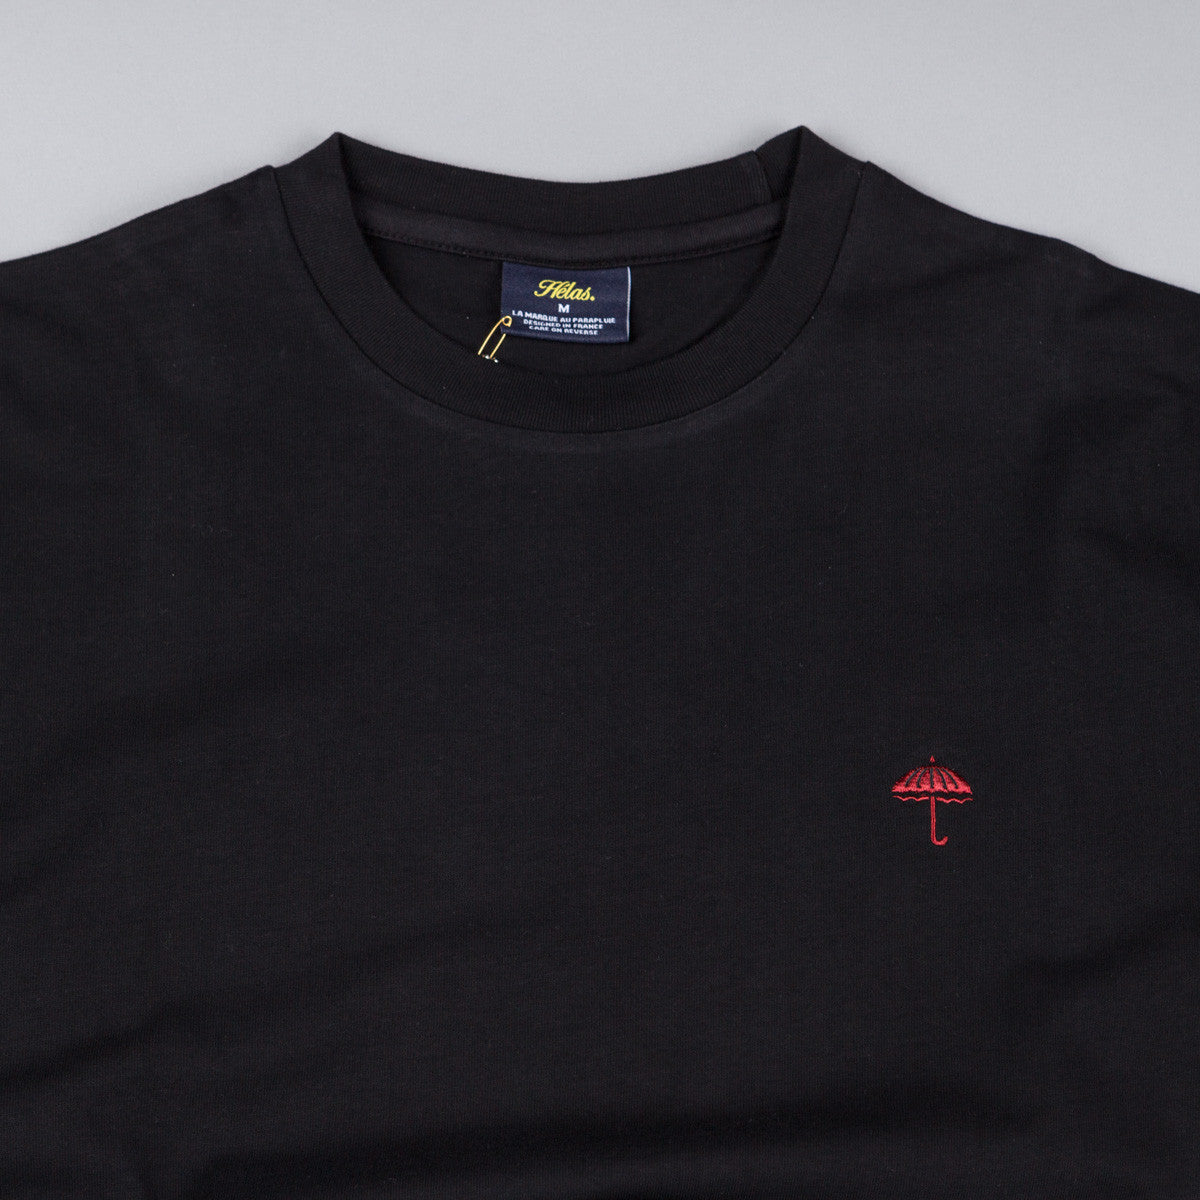 Helas Classic T-Shirt - Black / Red